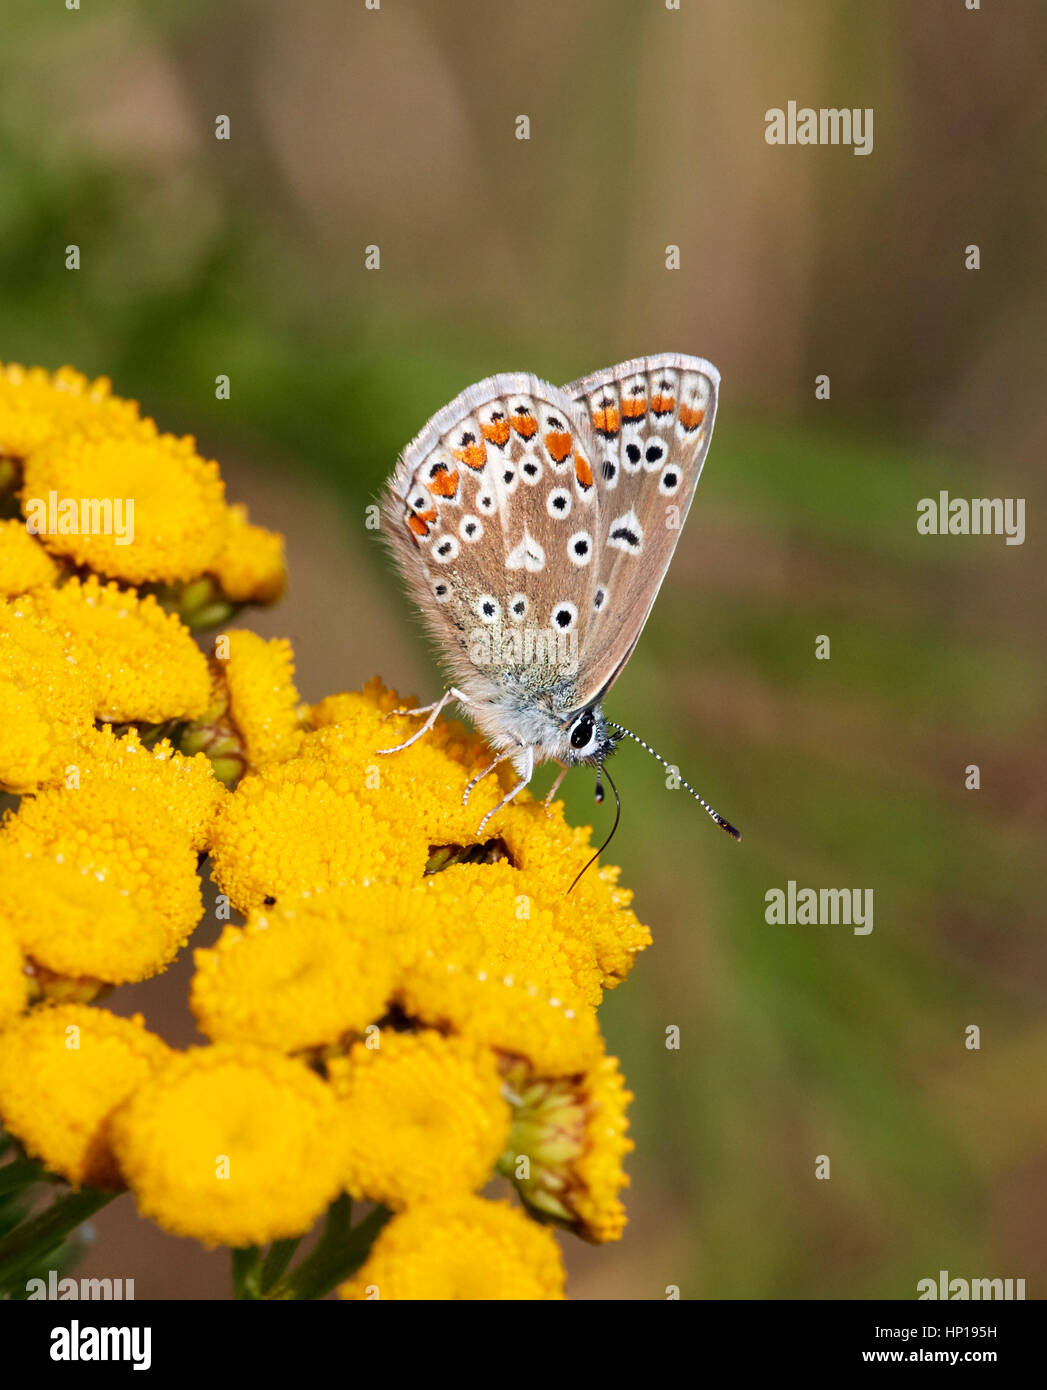 Common Blue nectaring on Tansy flowers. Hurst Park, West Molesey, Surrey, UK. - Stock Image